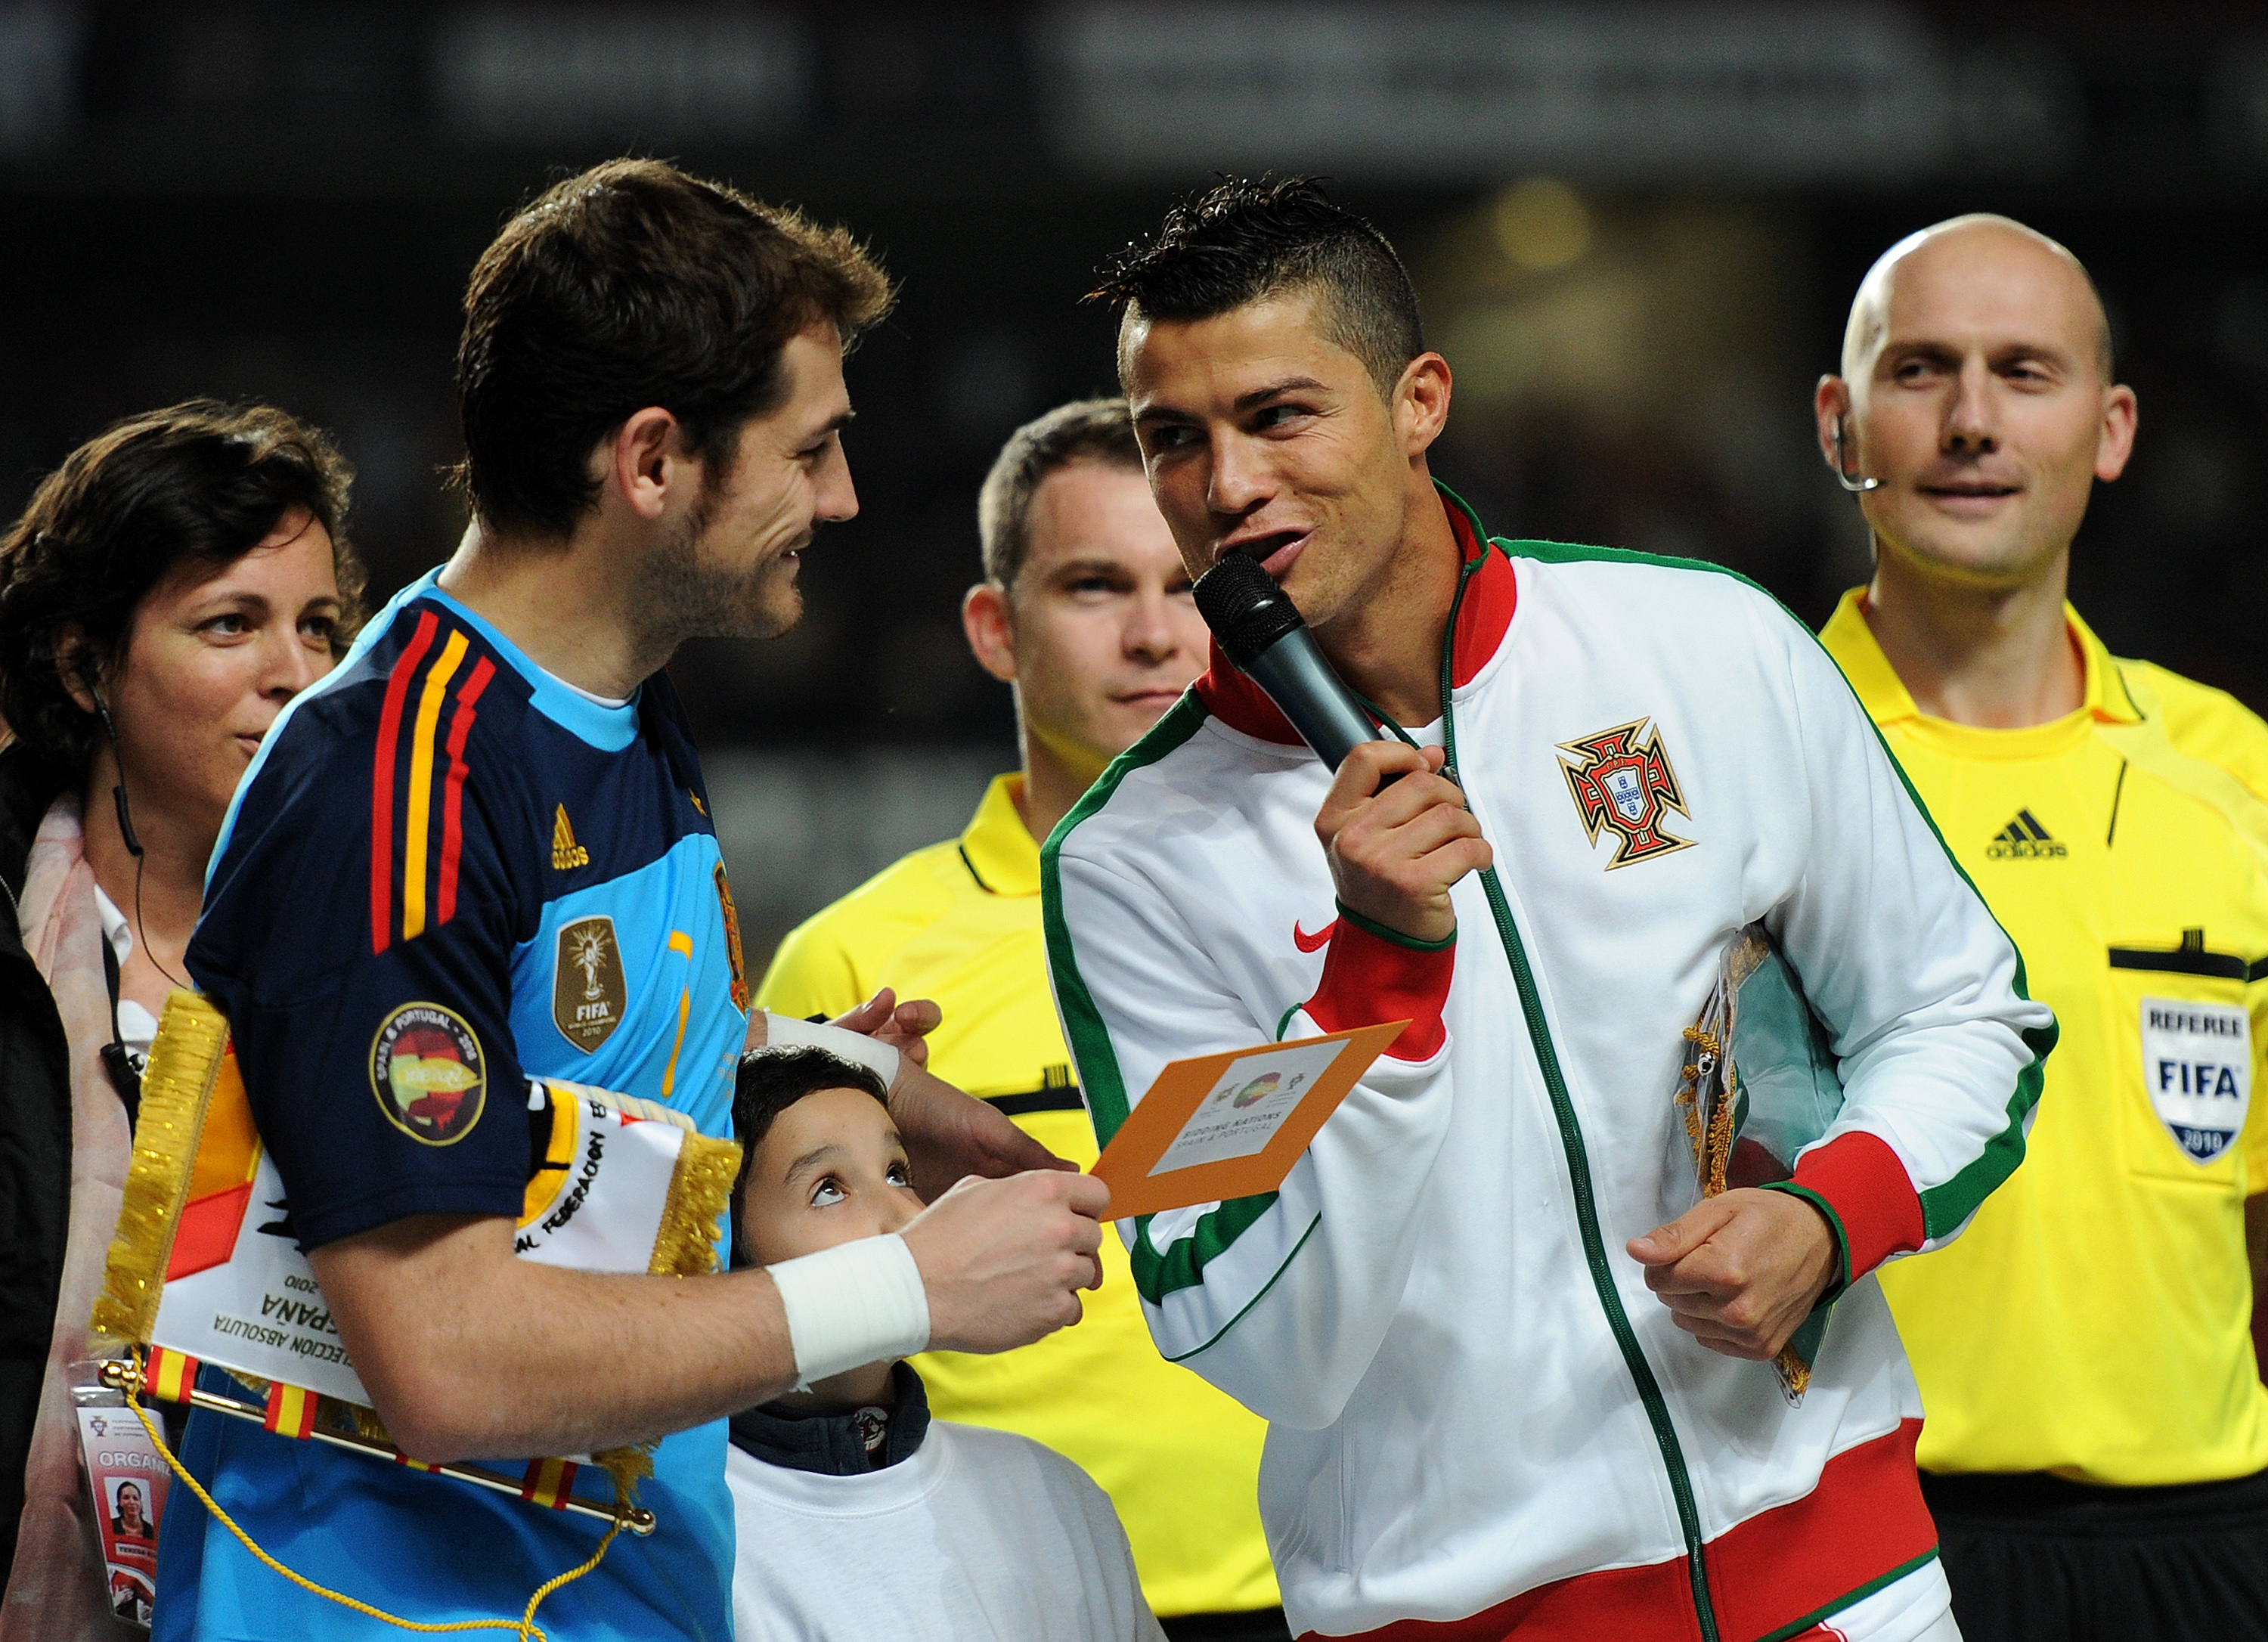 LISBON, PORTUGAL - NOVEMBER 17:  Cristiano Ronaldo (R) of Portugal talks to goalkeeper Iker Casillas of Spain during the International Friendly match between Portugal and Spain at the Estadio da Luz on November 17, 2010 in Lisbon, Portugal.  (Photo by Jas